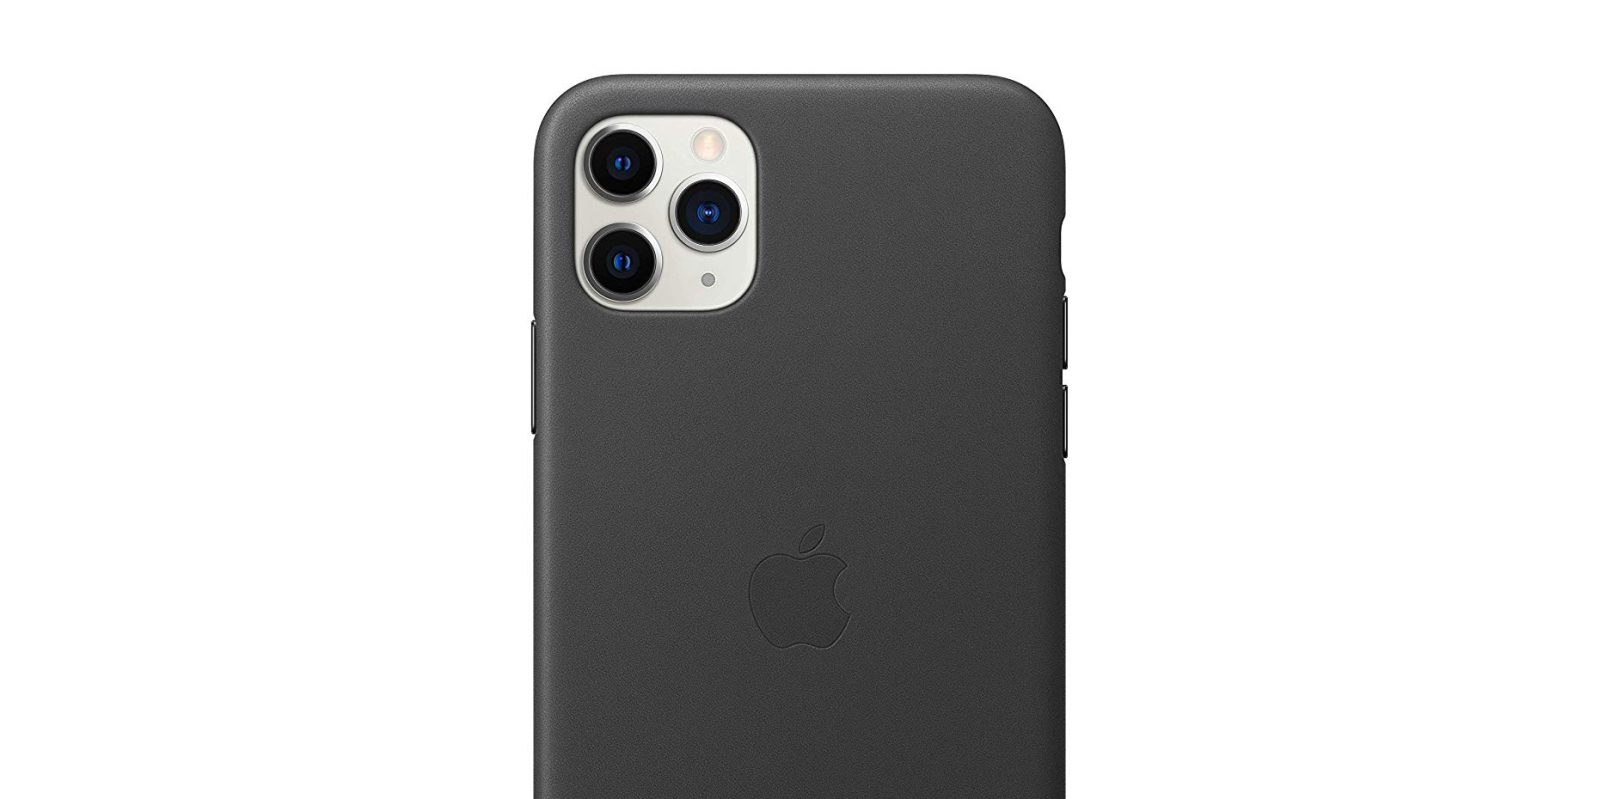 Official iPhone 11 Pro Max Leather Cases see 20% discount to $40